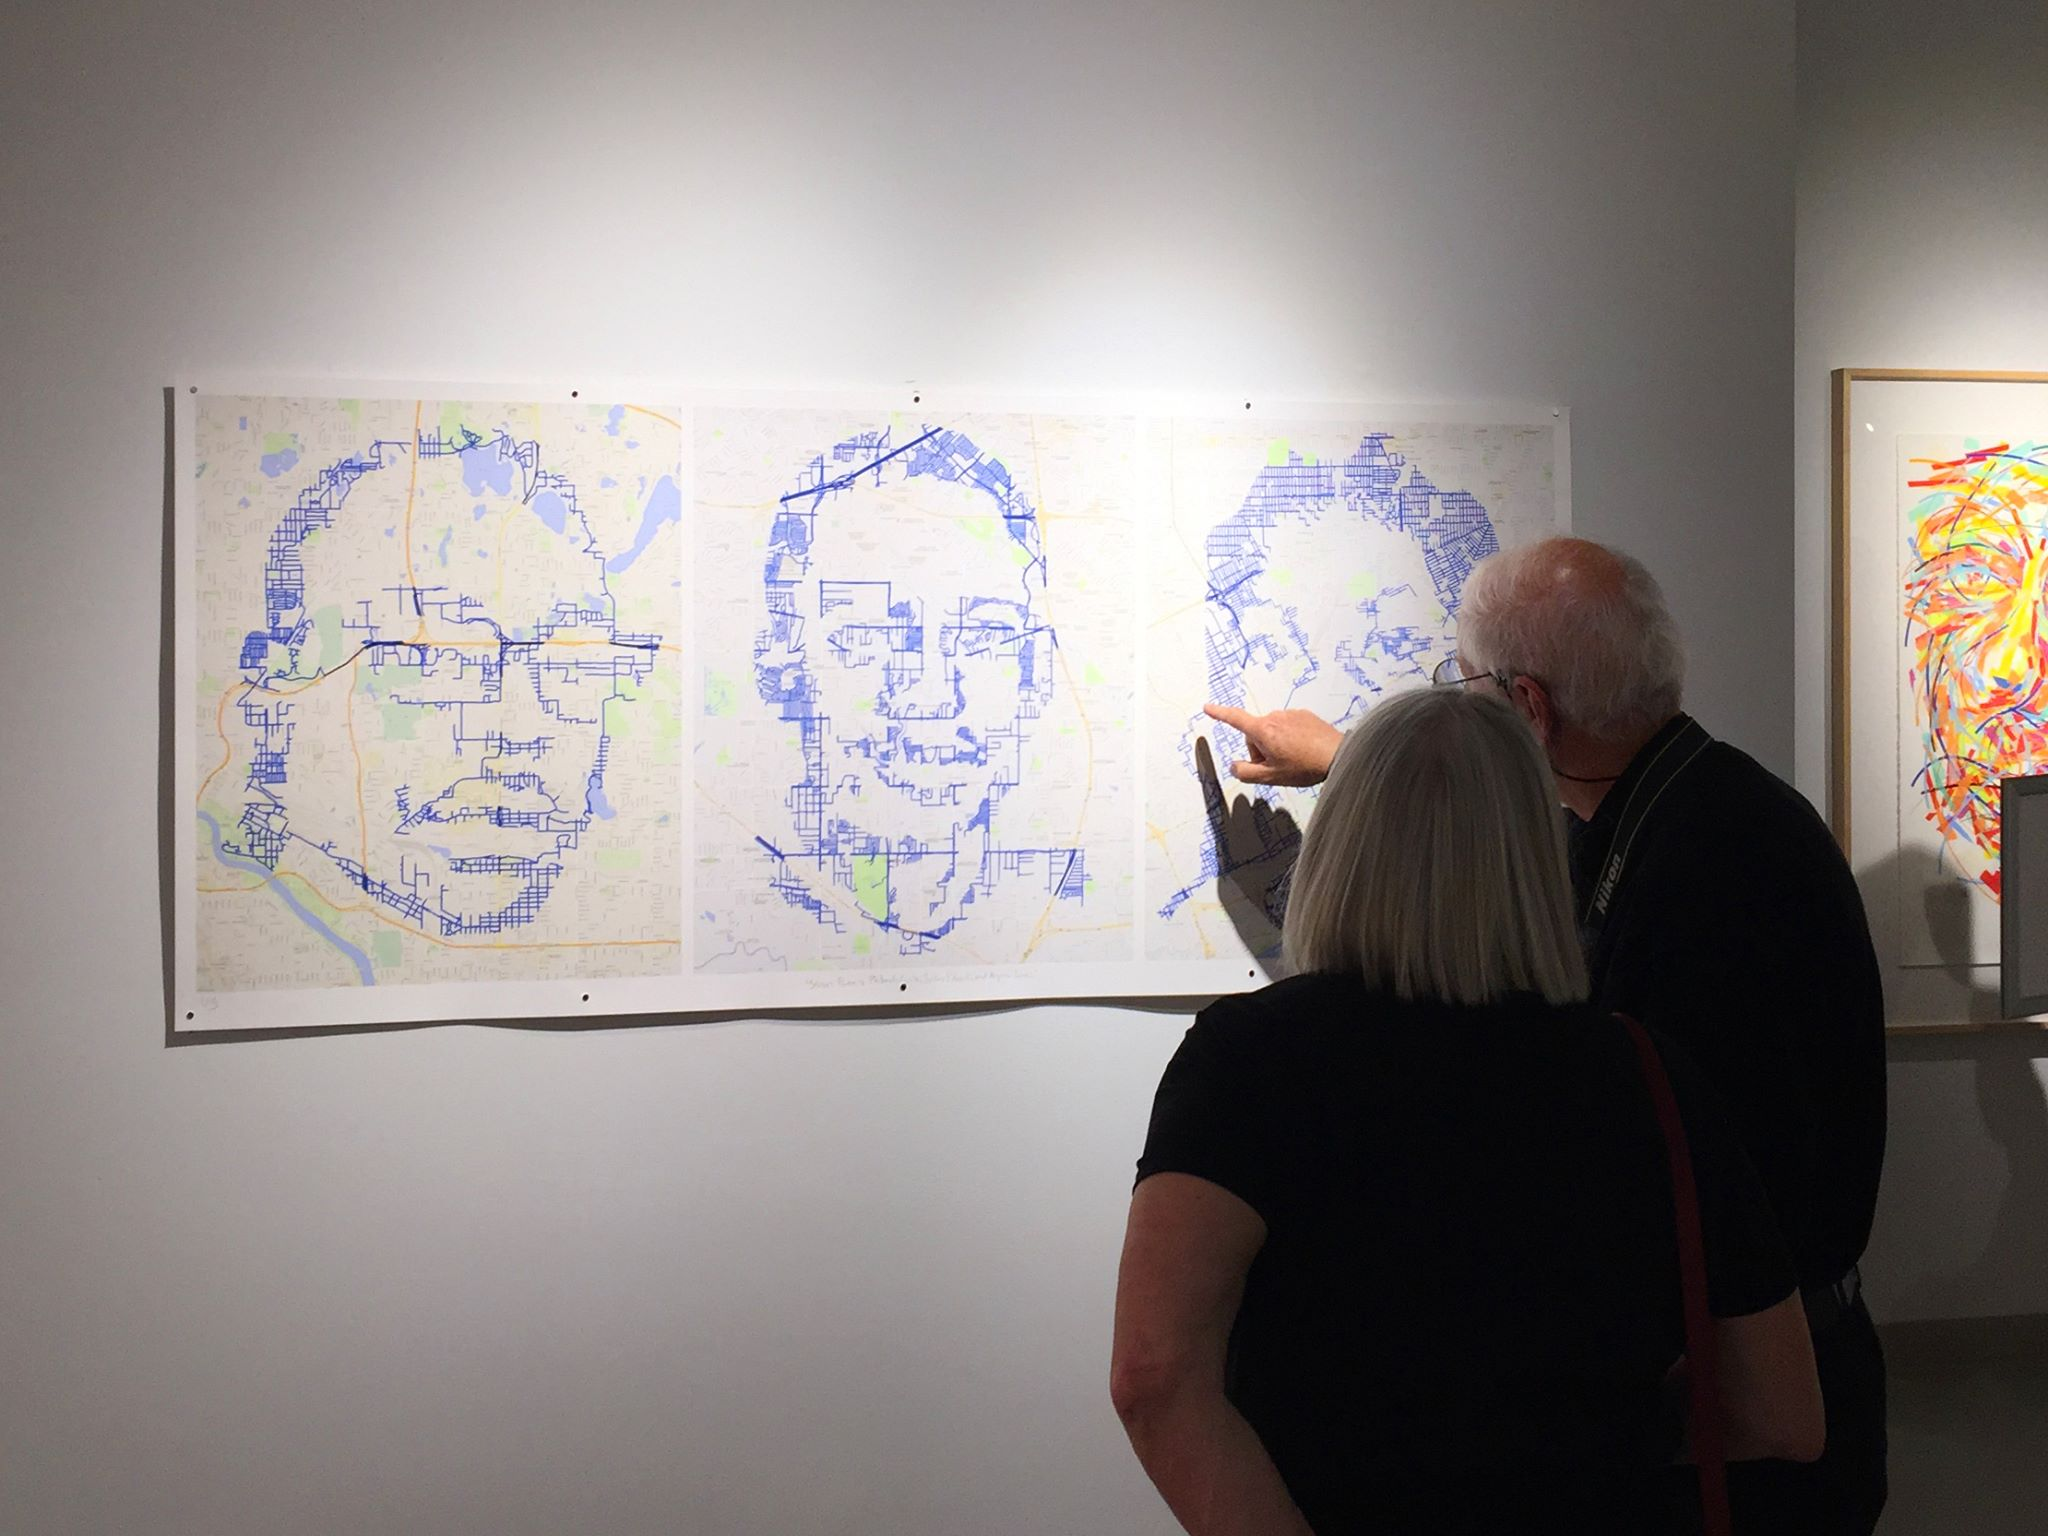 """At the Michigan Fine Arts Competition exhibition, people are following the key points of my """"Street Portraits: Philando Castile, Jordan Edwards, and Aiyana Jones,"""" each drawn in one continuous line through the streets around St. Paul, Dallas and Detroit where they were killed."""